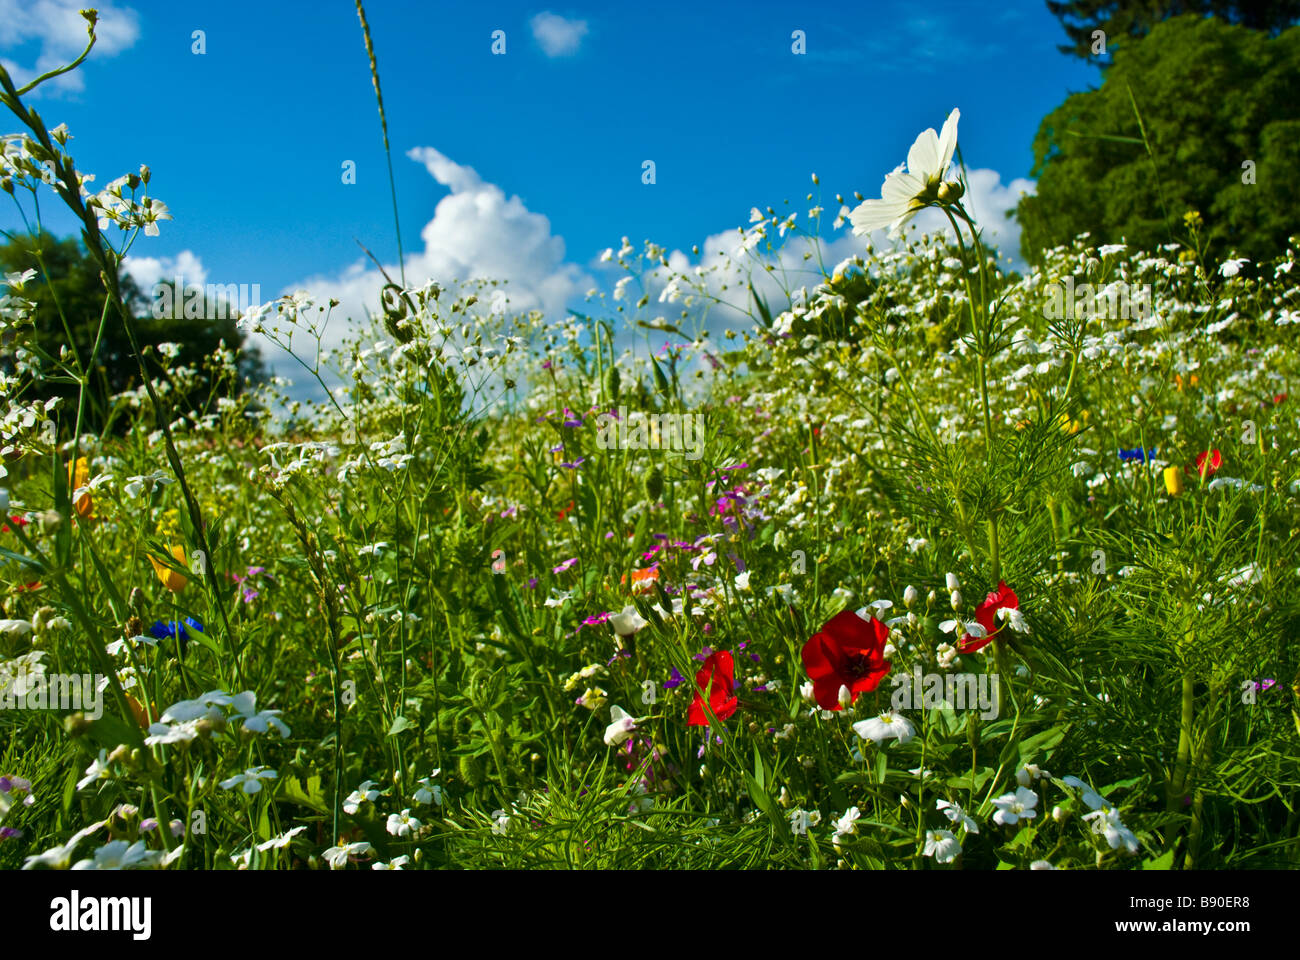 Meadow with colorful flowers like cornflowers herbs and blue sky clouds and trees | Wiese mit farbenfrohen Blumen - Stock Image